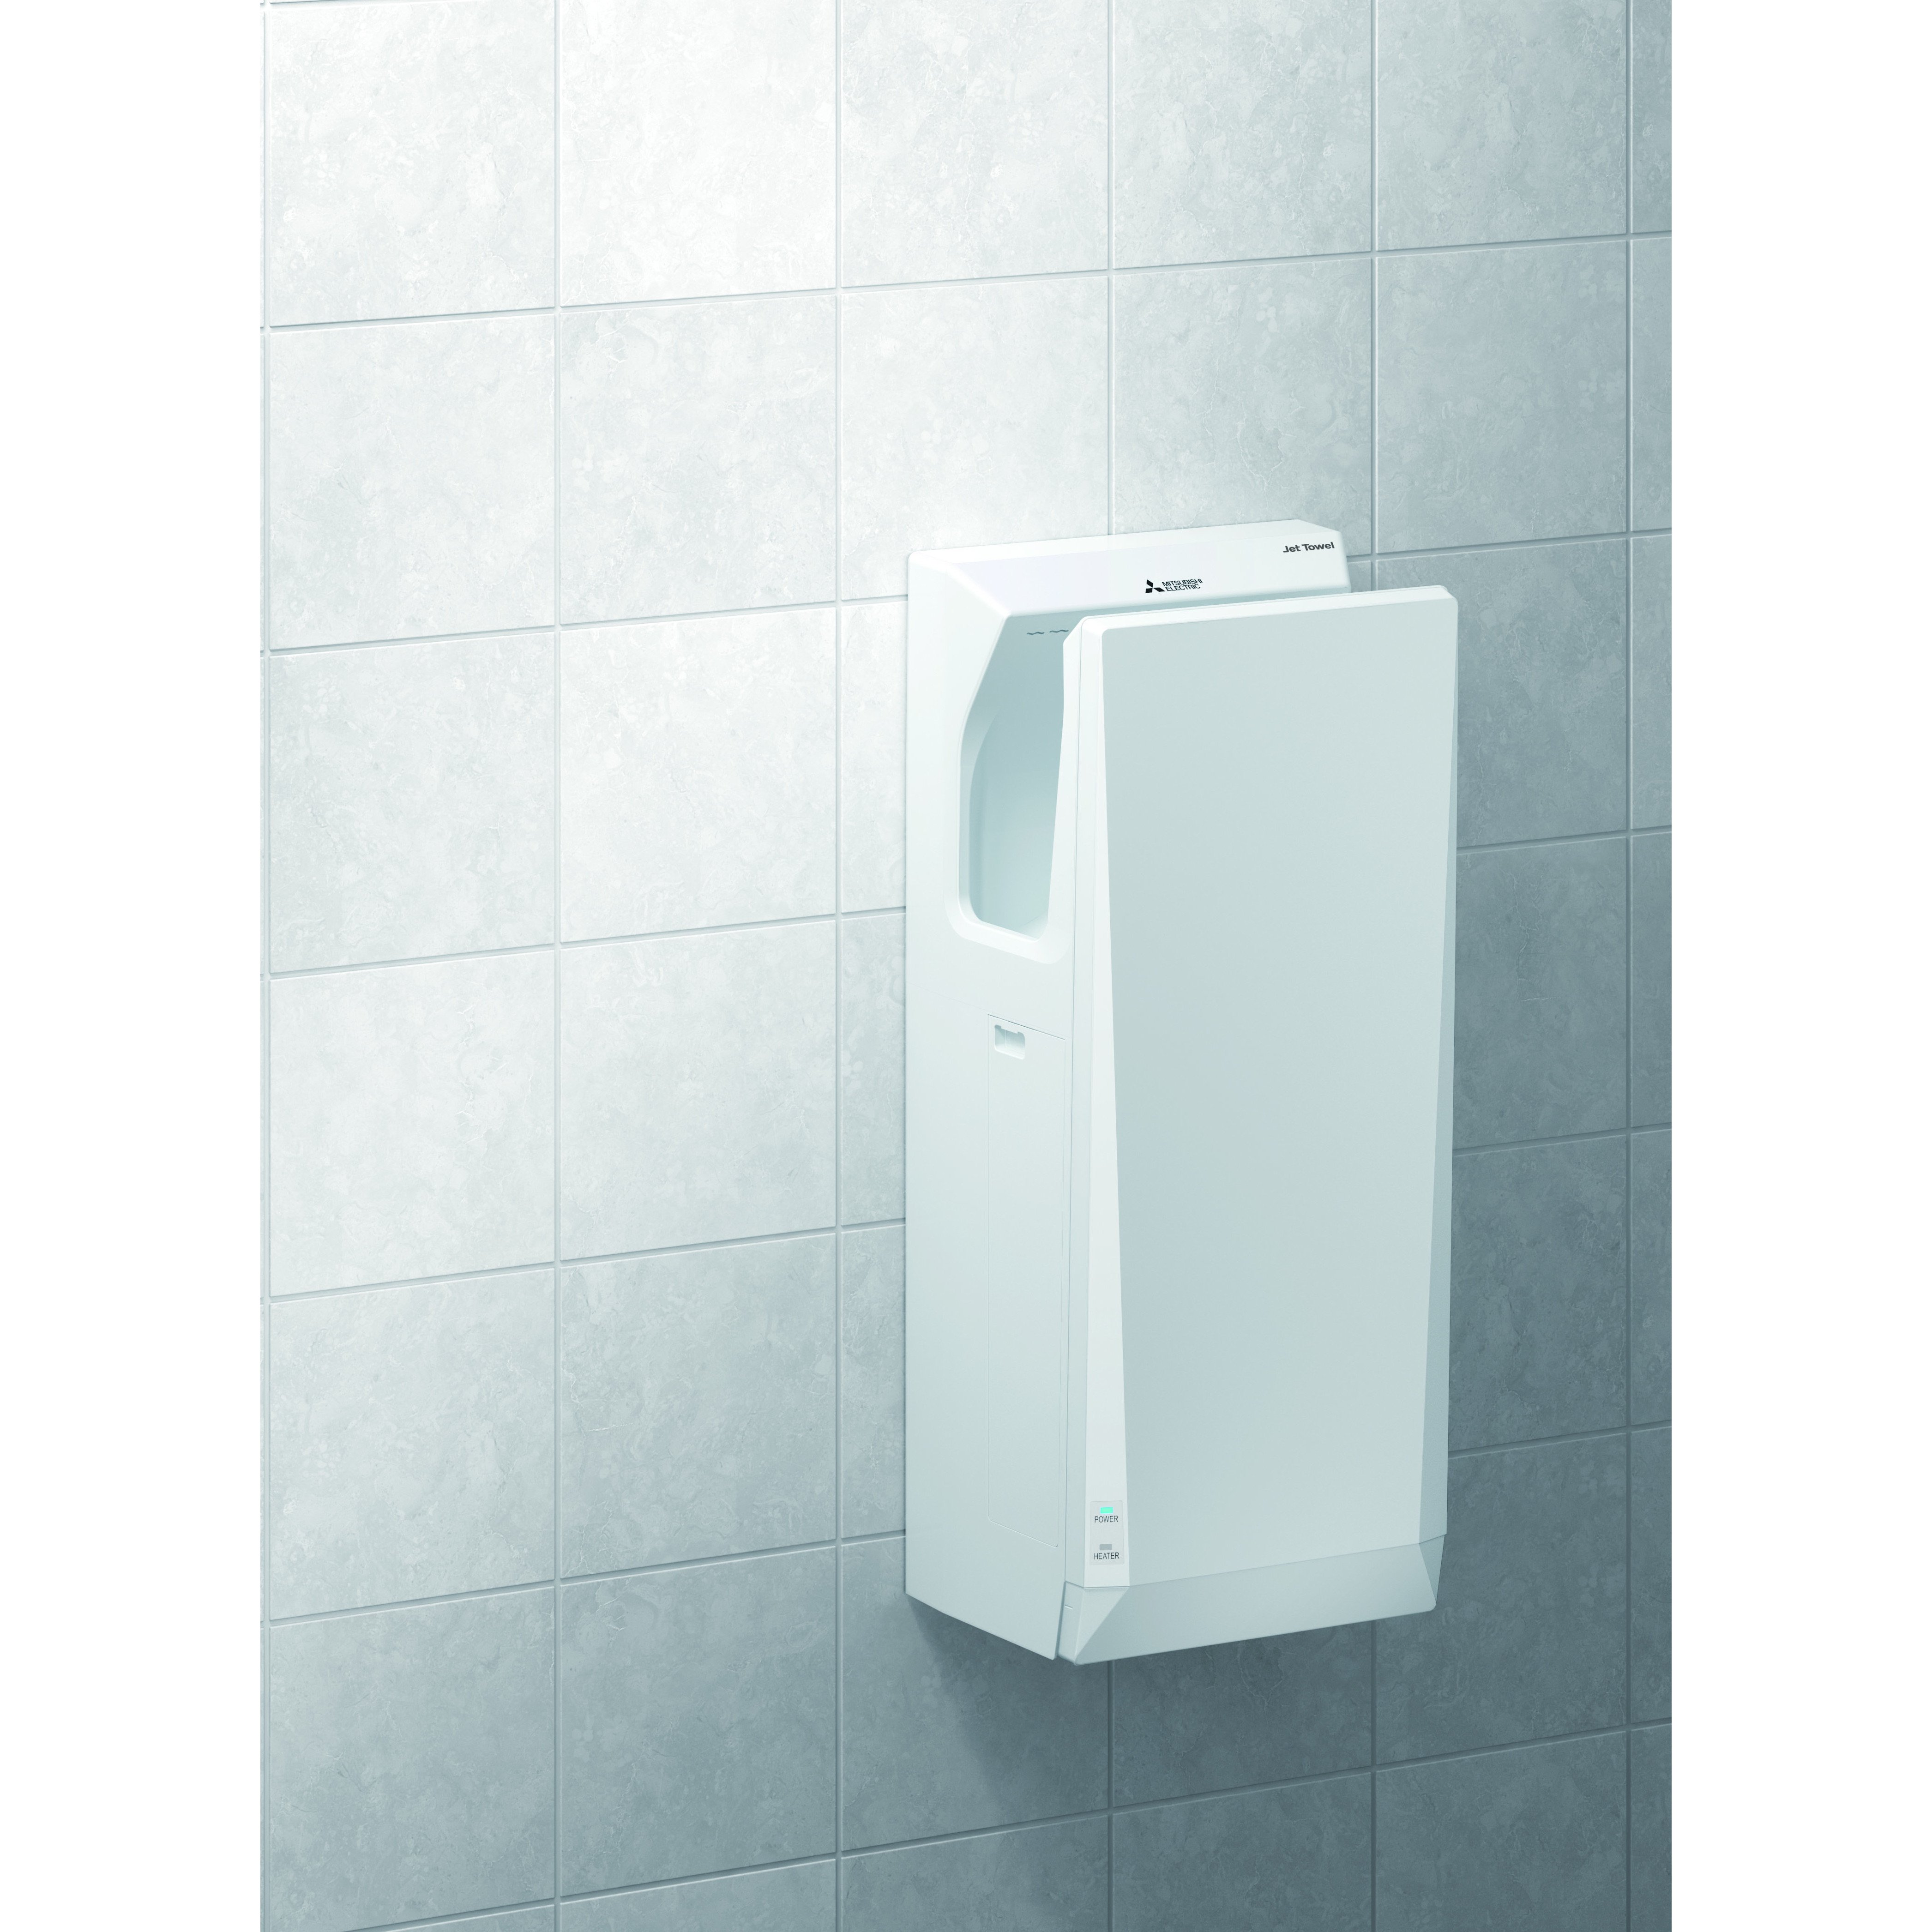 mitsubishi cube type electric dryer slim smart white hand silver midshires